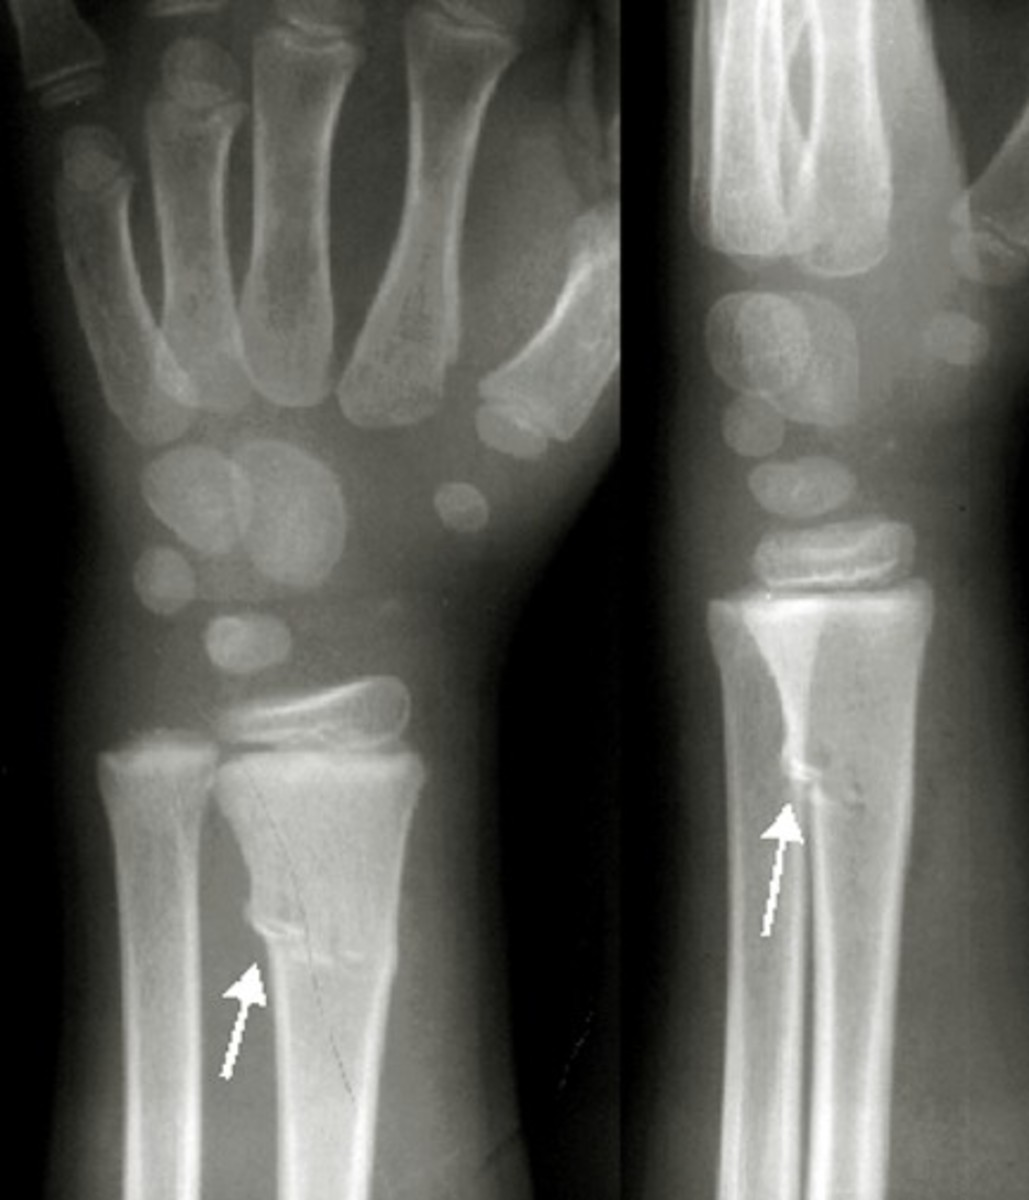 greenstick fracture - pictures, treatment, symptoms, healing time, Human Body